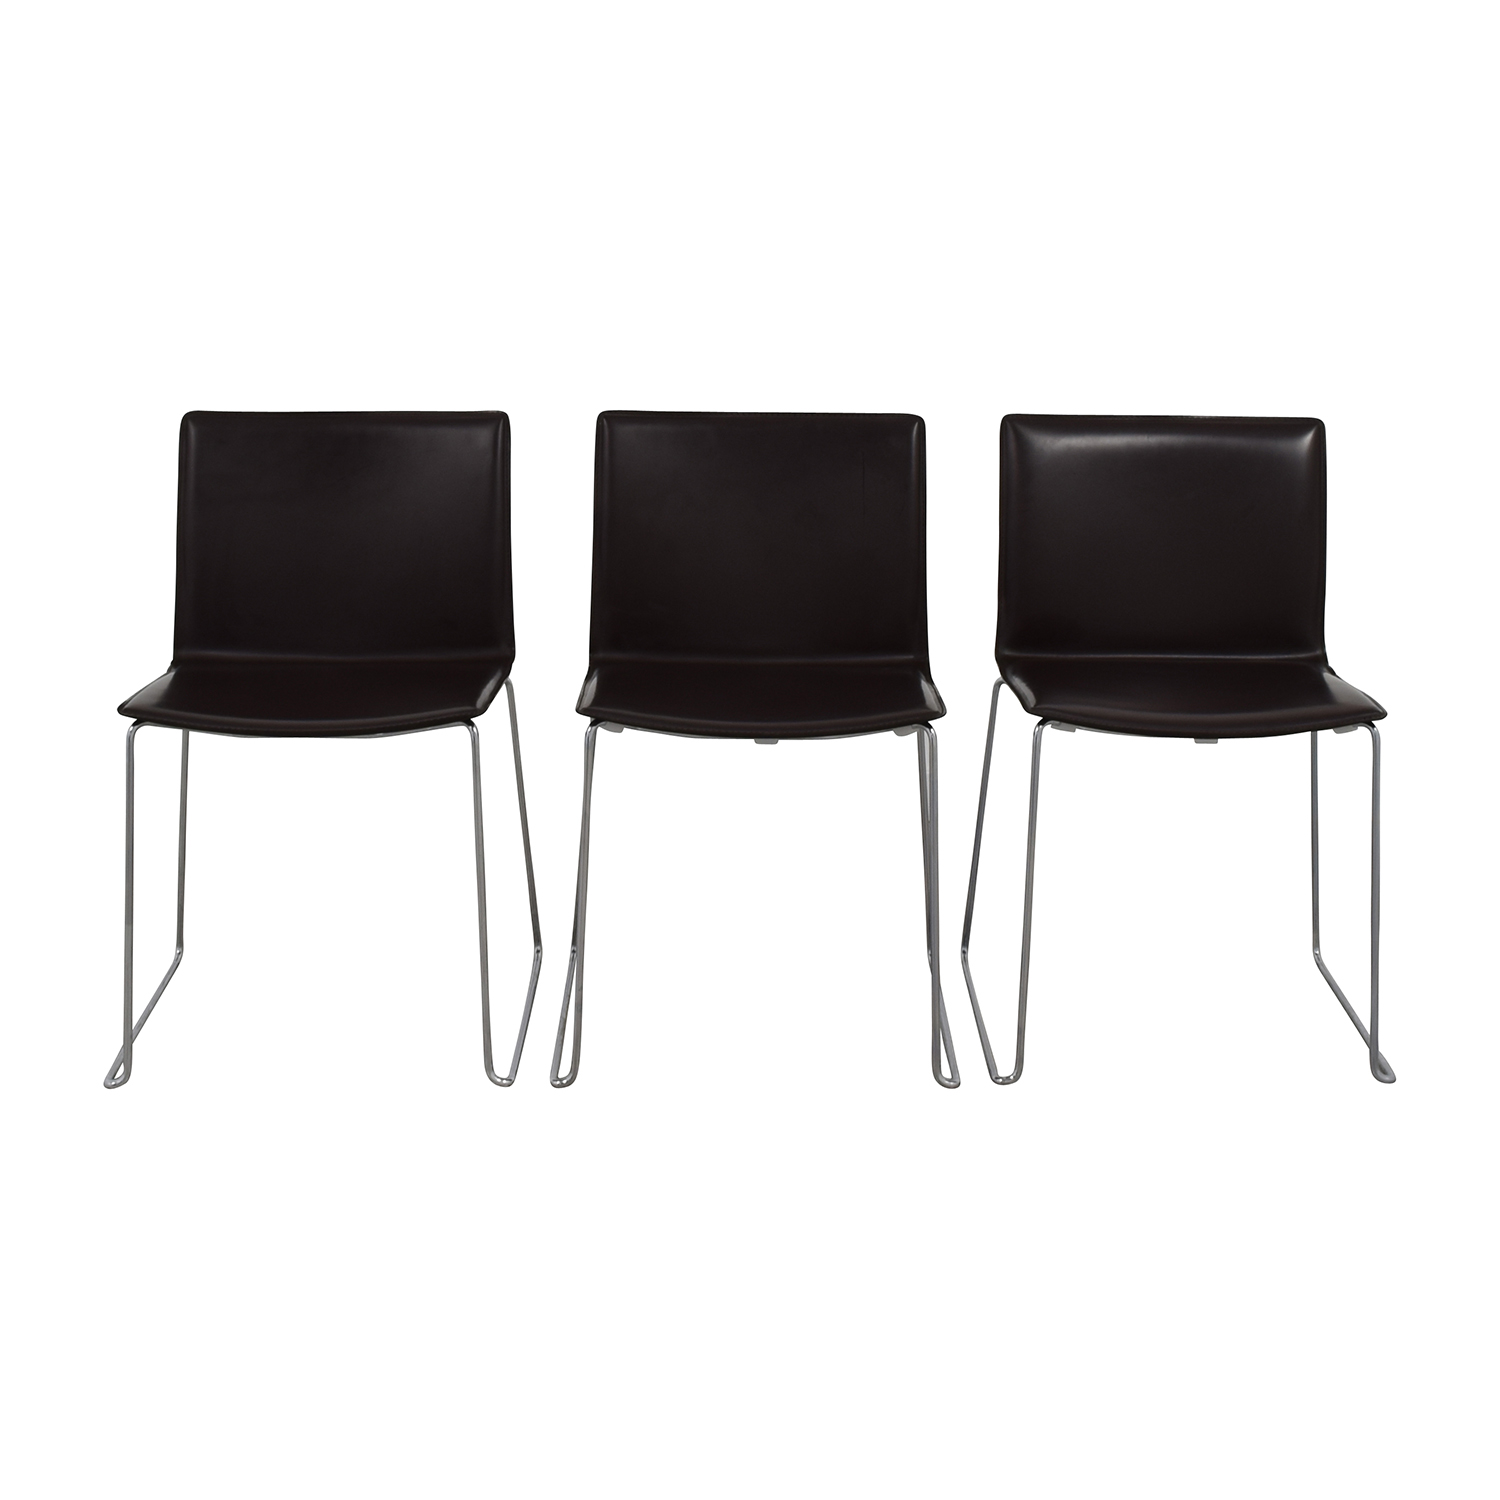 ABC Home & Carpet ABC Home & Carpet Leather Chrome Chairs, Set of Three for sale